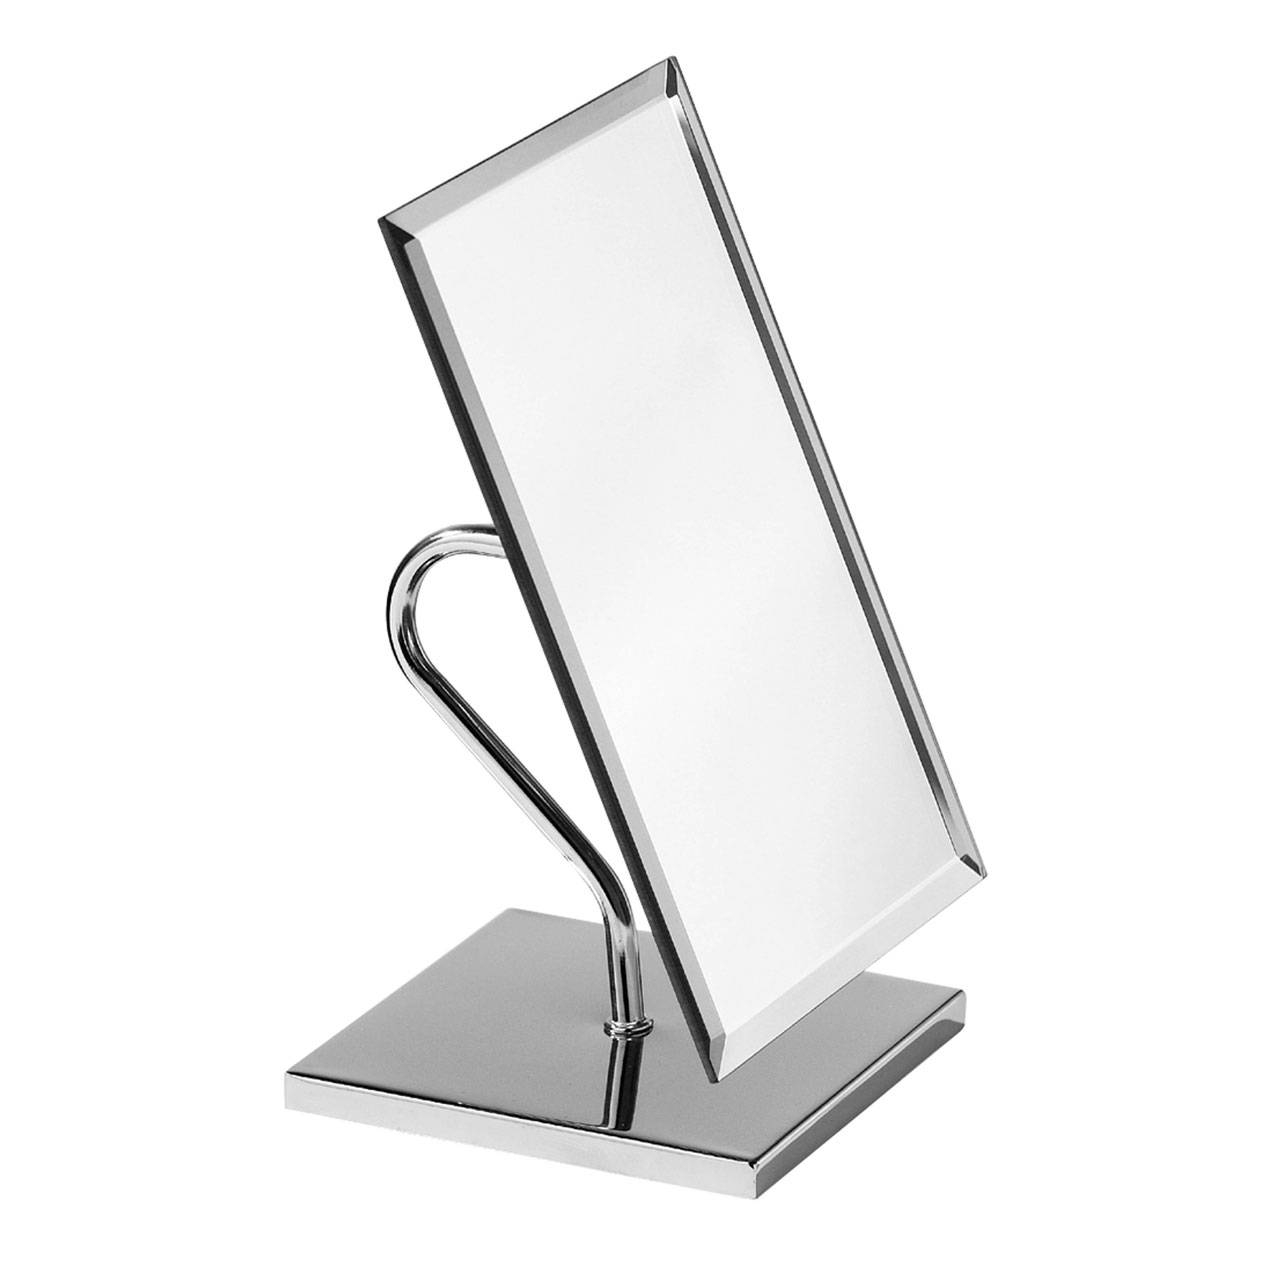 Free Standing Bathroom Mirrors Uk | Home with regard to Small Free Standing Mirrors (Image 13 of 25)